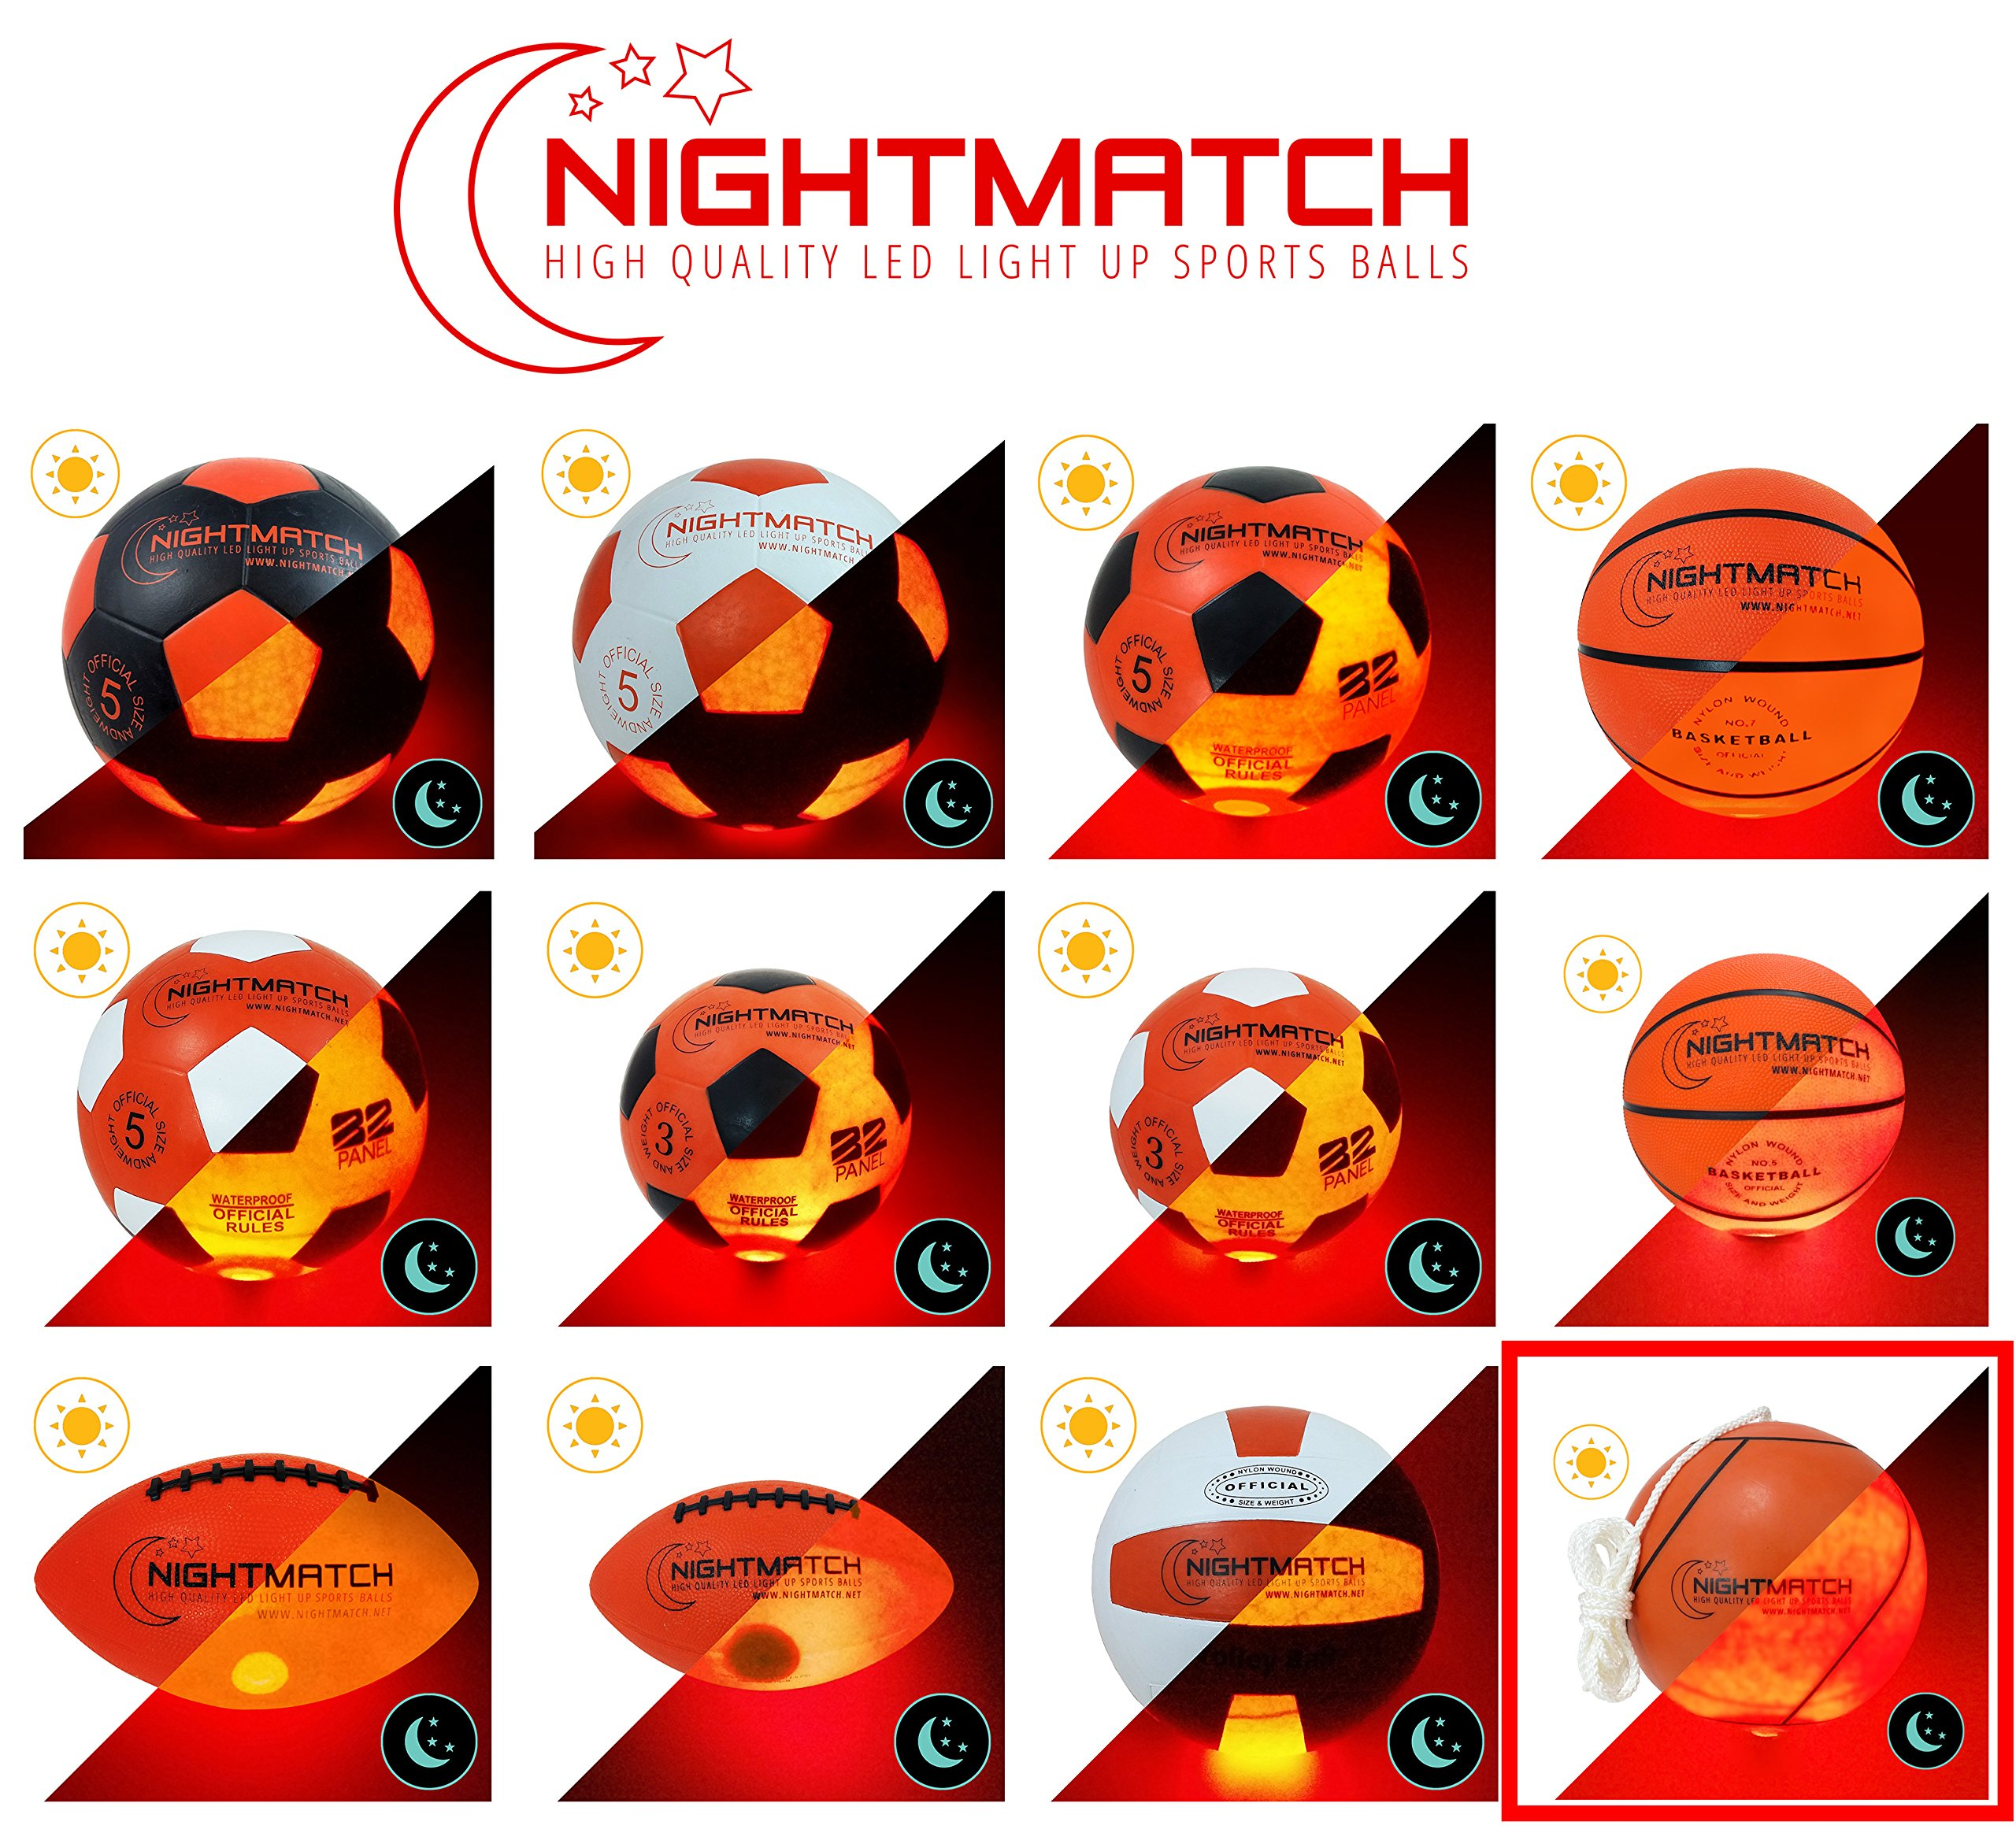 NIGHTMATCH Light Up Tetherball INCL. Ball Pump & Spare Batteries - Inside LED Lights up When Bounced - Glow in The Dark Tetherball - Tether Ball - Official Size & Weight by NIGHTMATCH (Image #7)